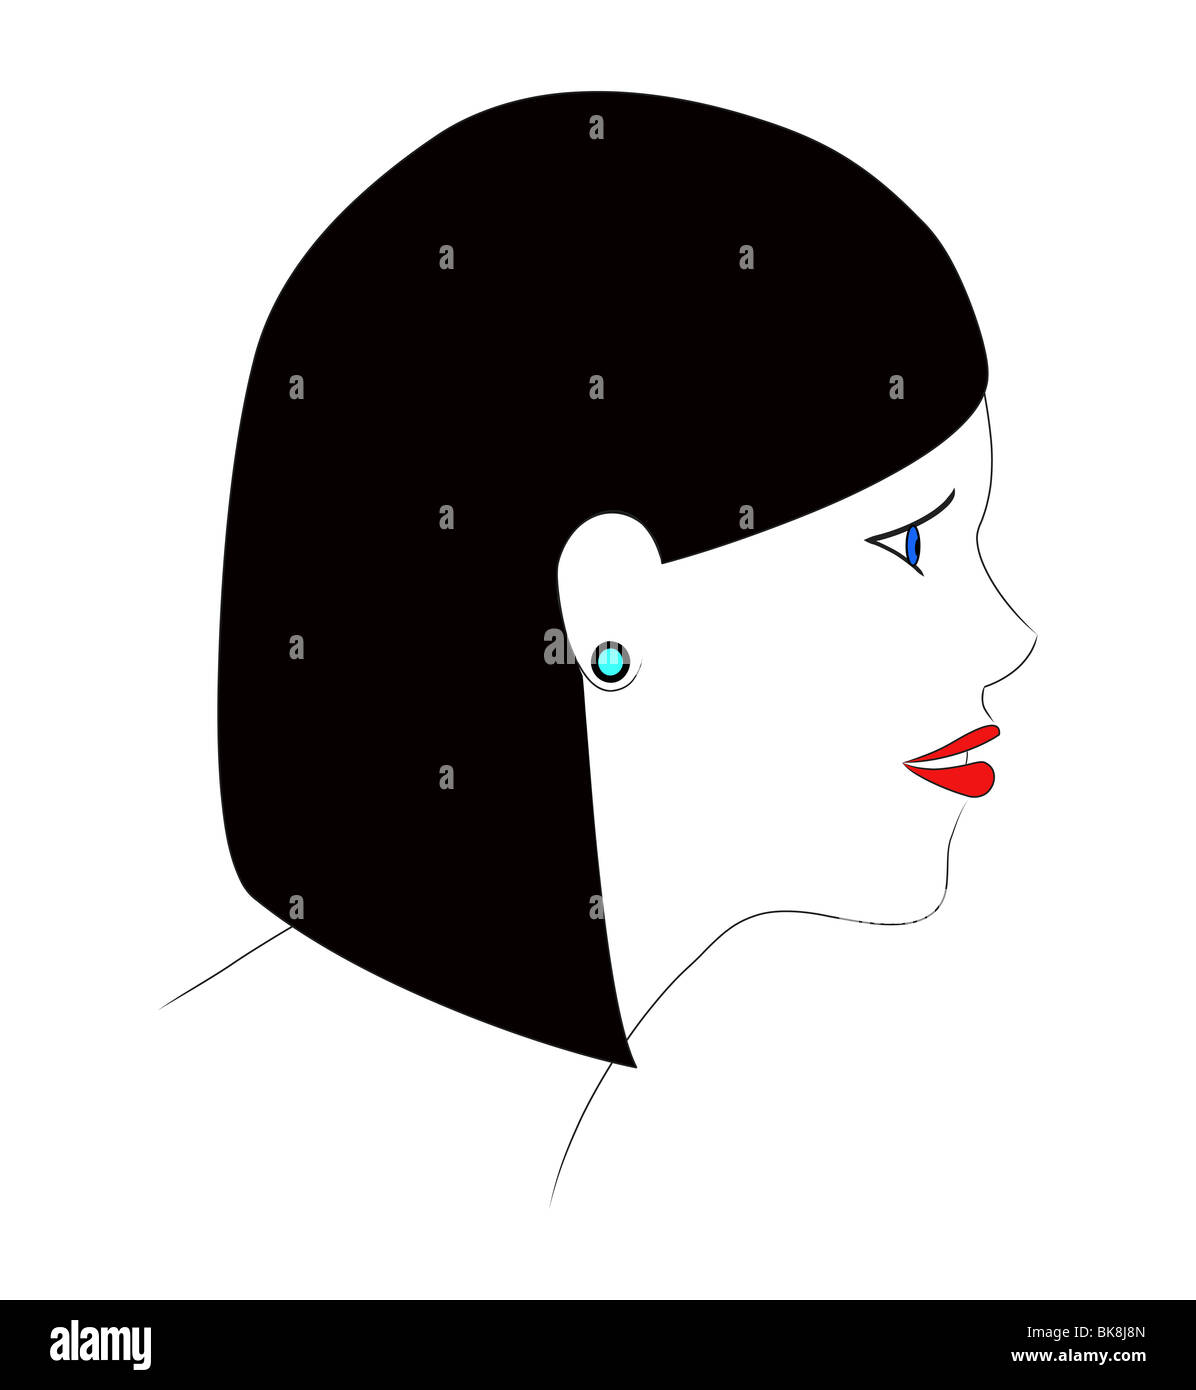 An illustration of the profile of a girl with black hair. - Stock Image